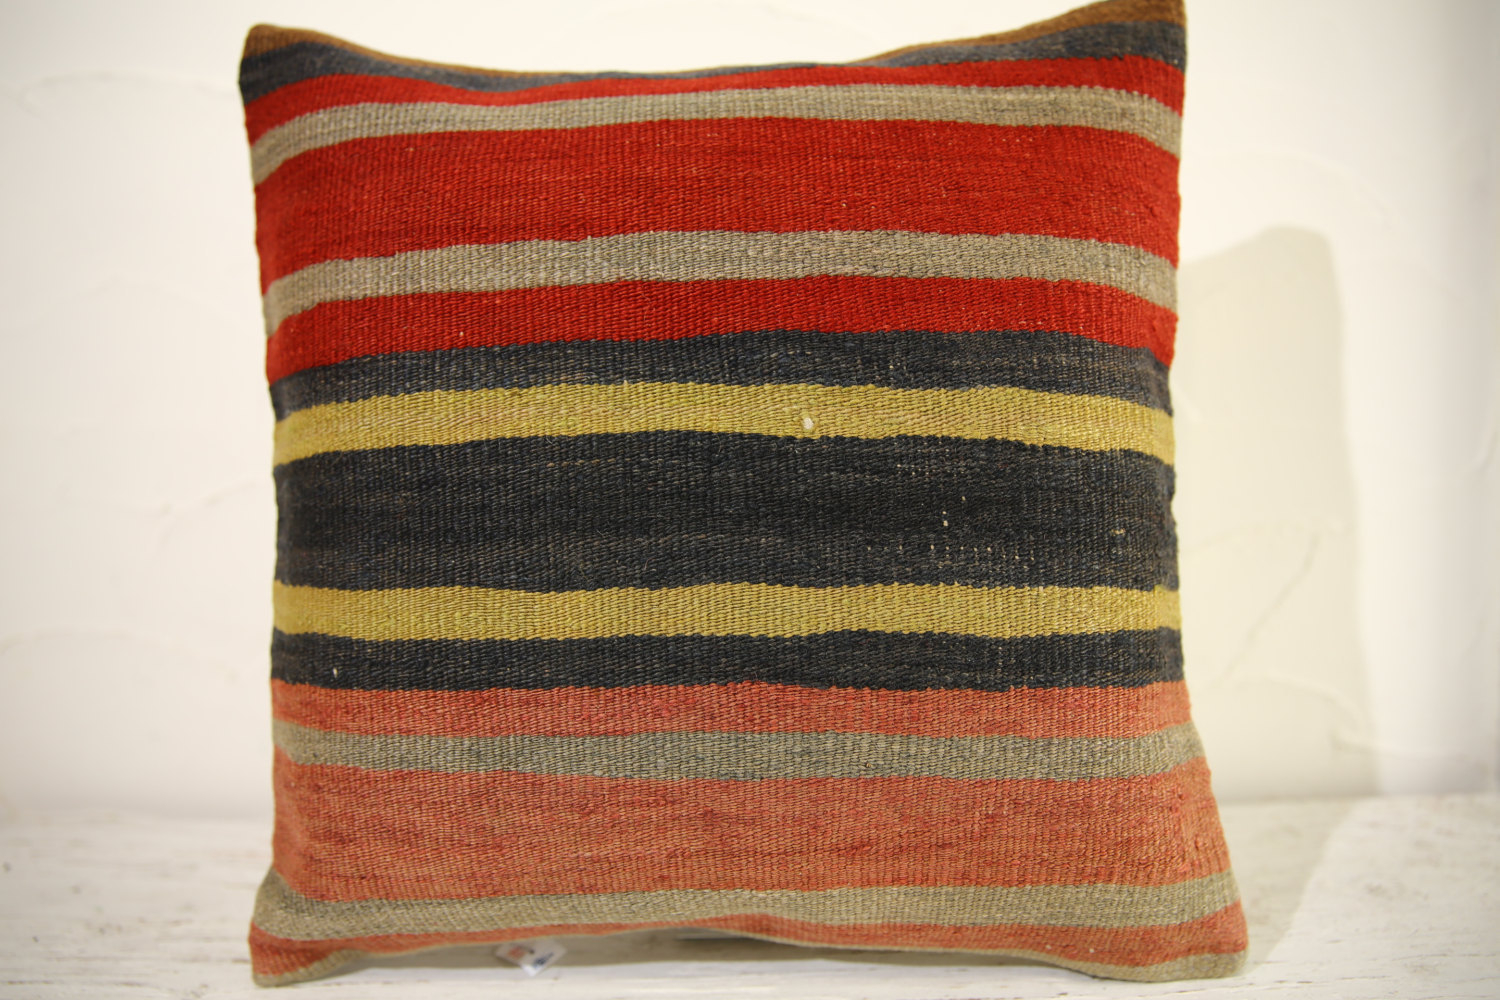 Kilim Pillows | 16x16 | Decorative Pillows | 933 | Accent Pillows,turkish pillow